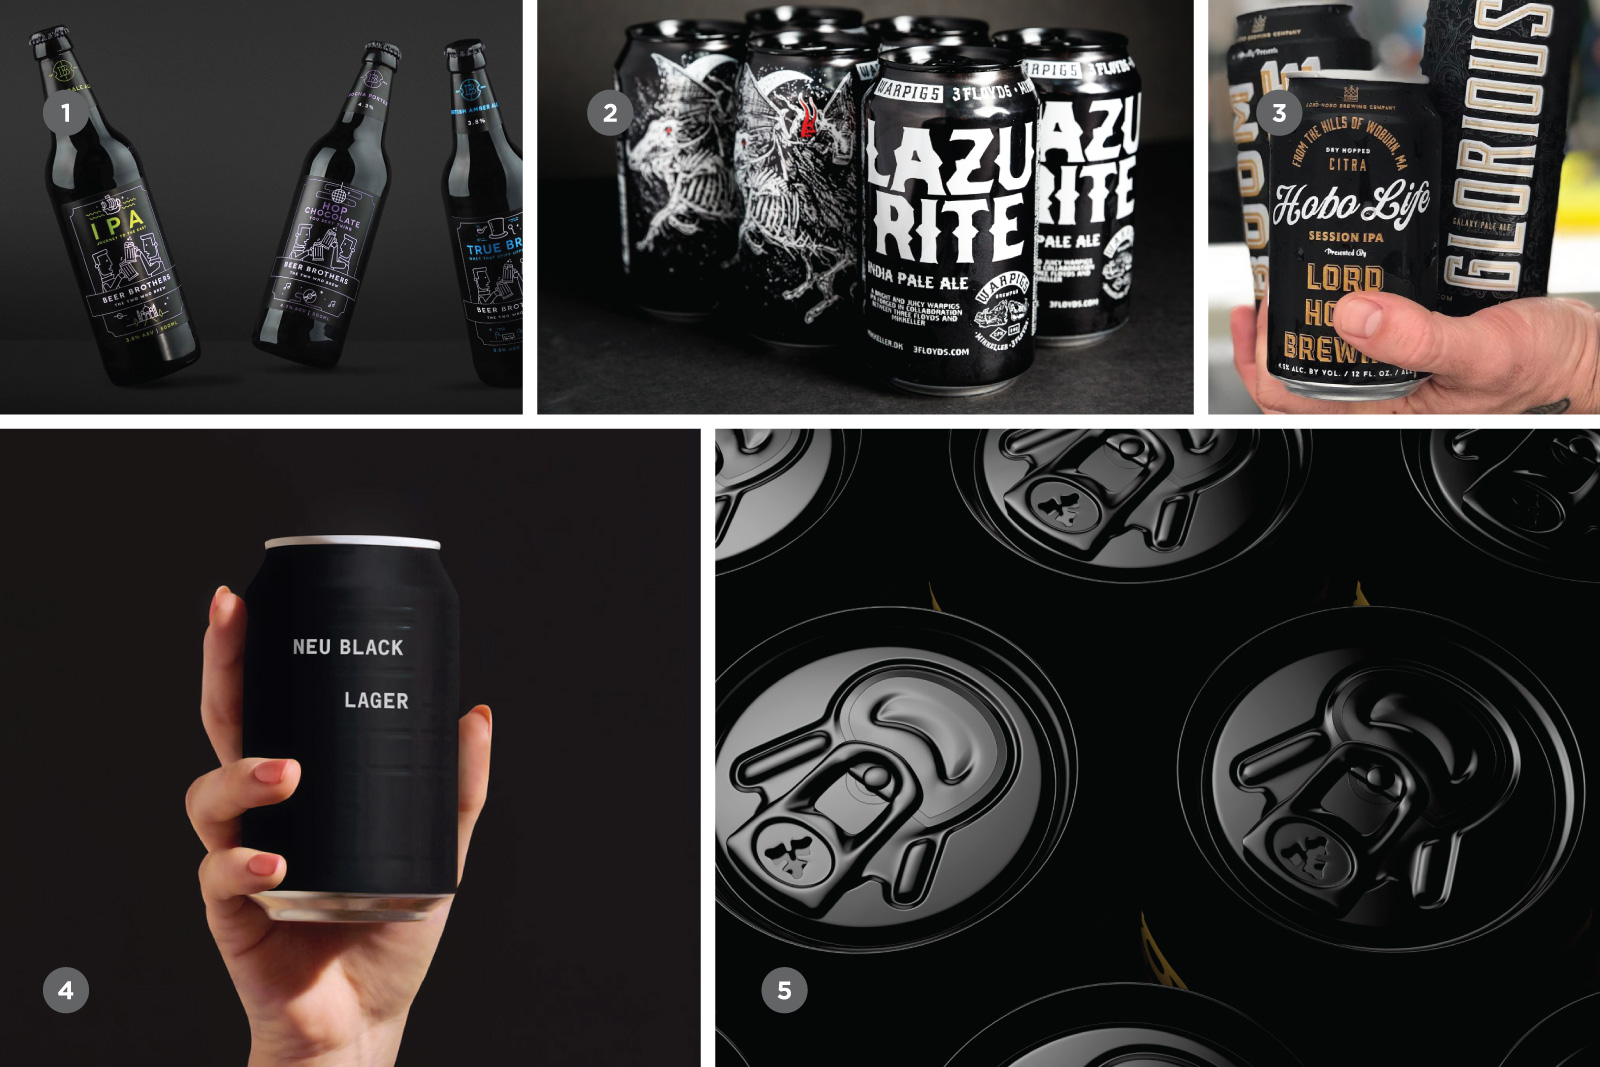 Some examples include 1. Beer Brothers, 2. WarPigs Brewing, 3. Lord Hobo Brewing, 4. And Union, 5. Carlsberg. Source:  Codo Design